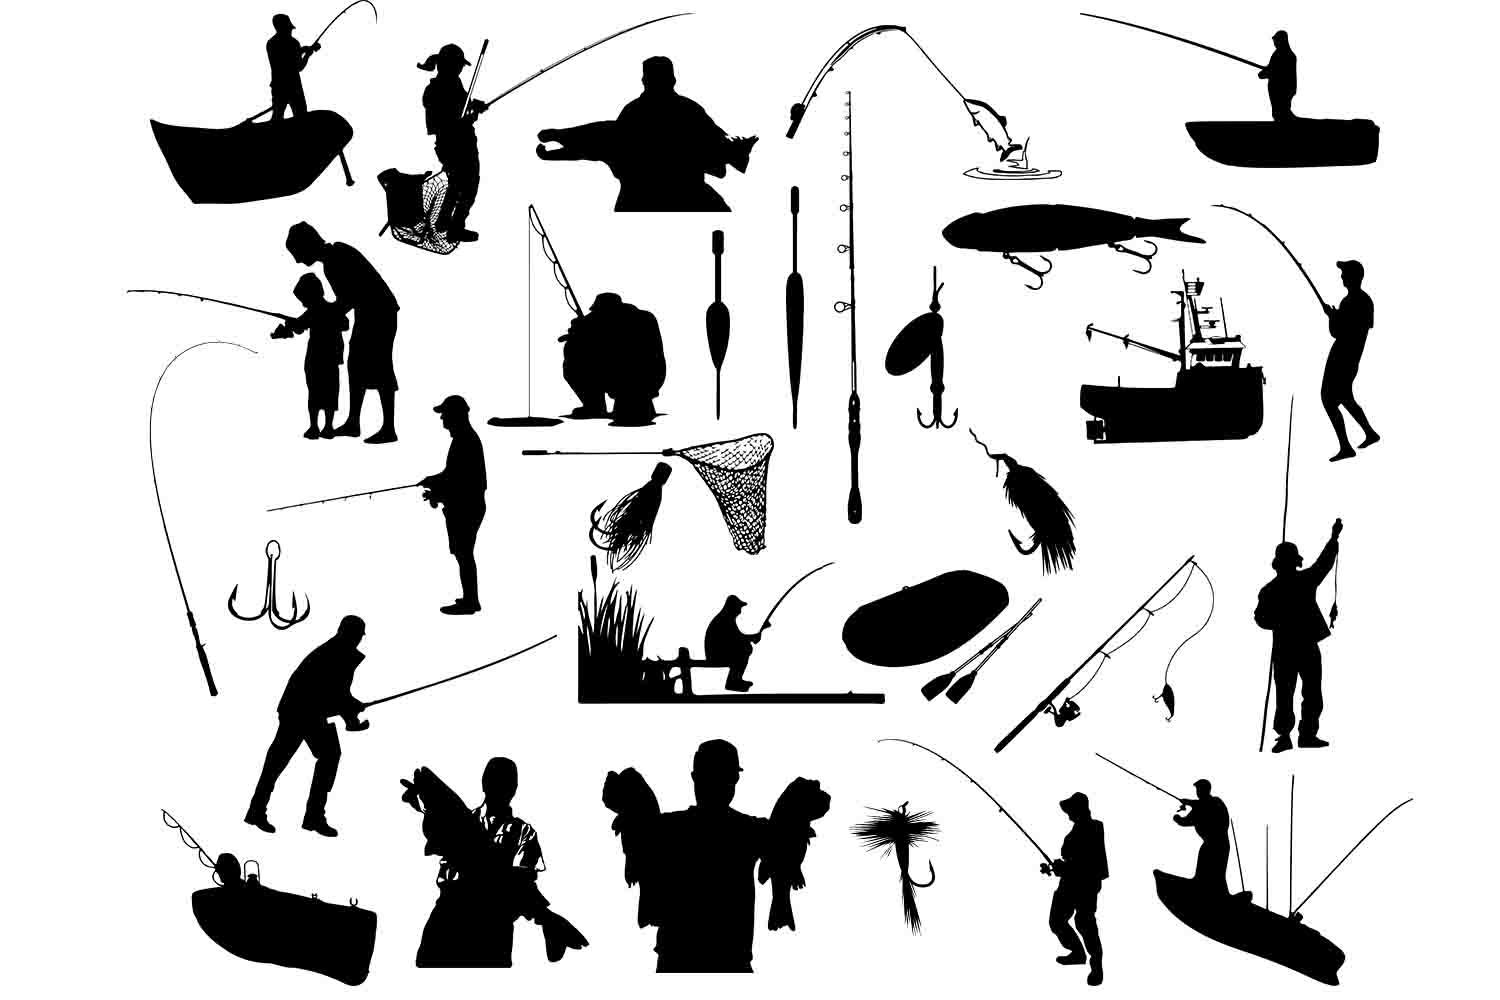 Download Free Fishing Silhouette Graphic By Retrowalldecor Creative Fabrica for Cricut Explore, Silhouette and other cutting machines.